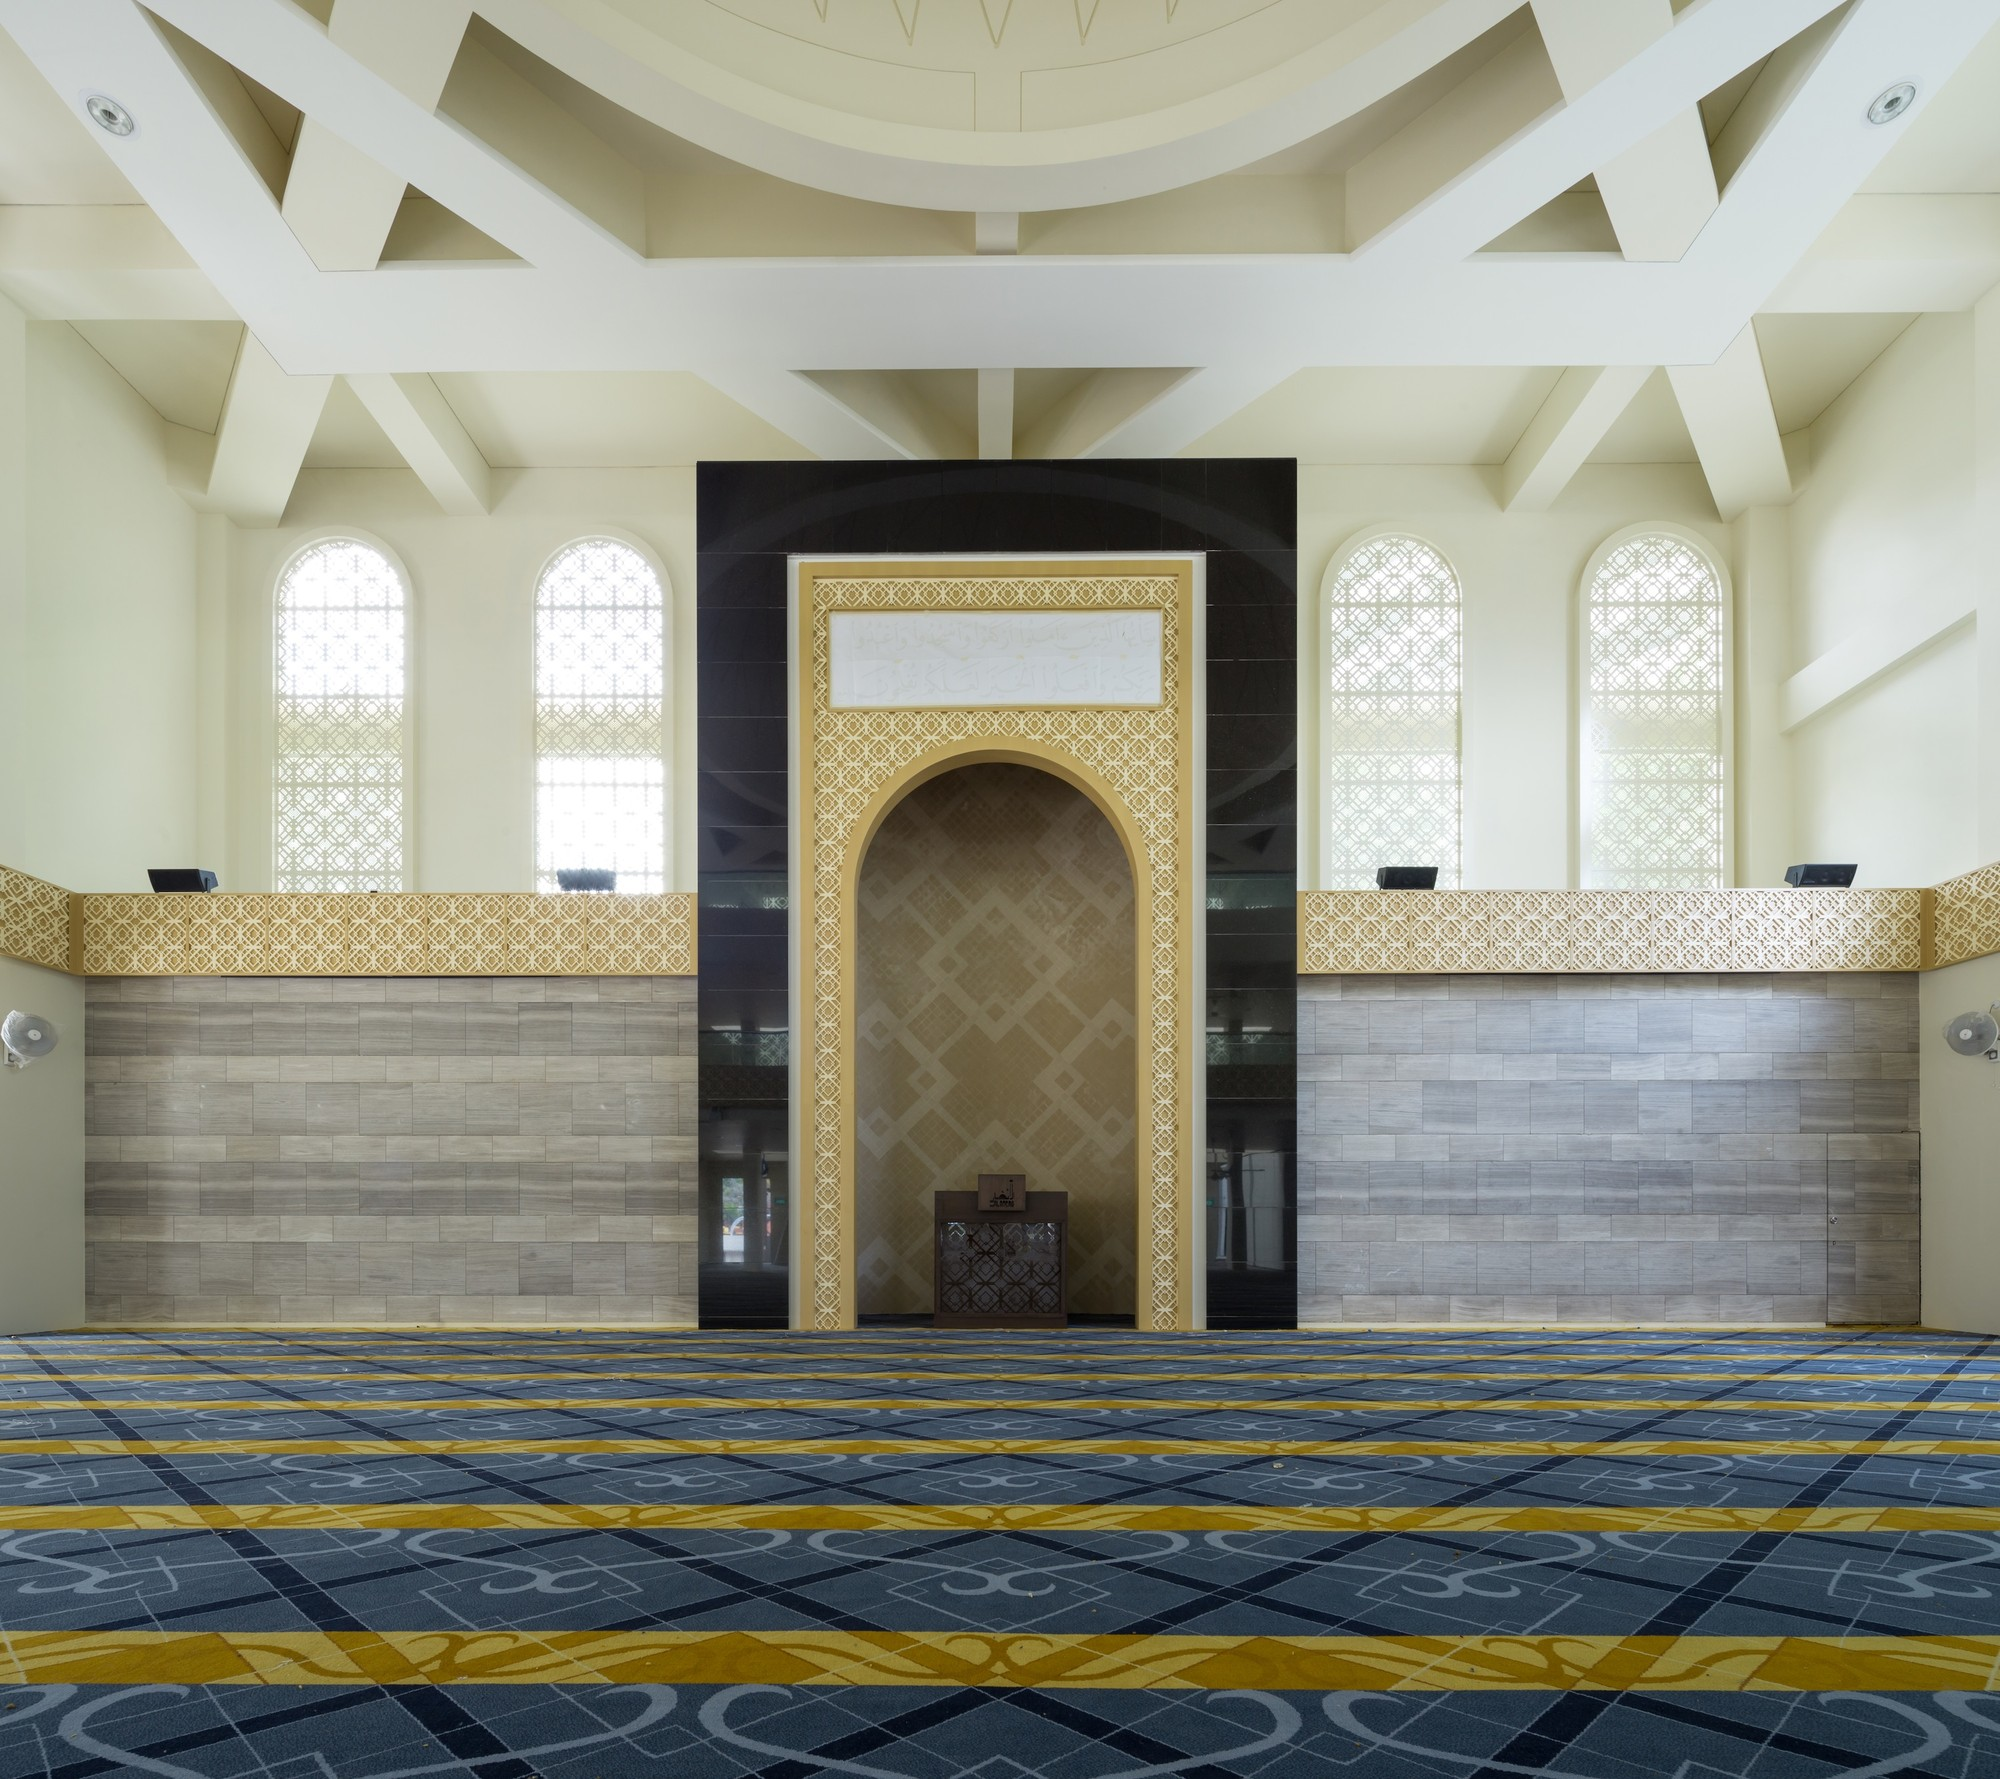 Al ansar mosque ong ong pte ltd archdaily for Plaza interior designs ltd